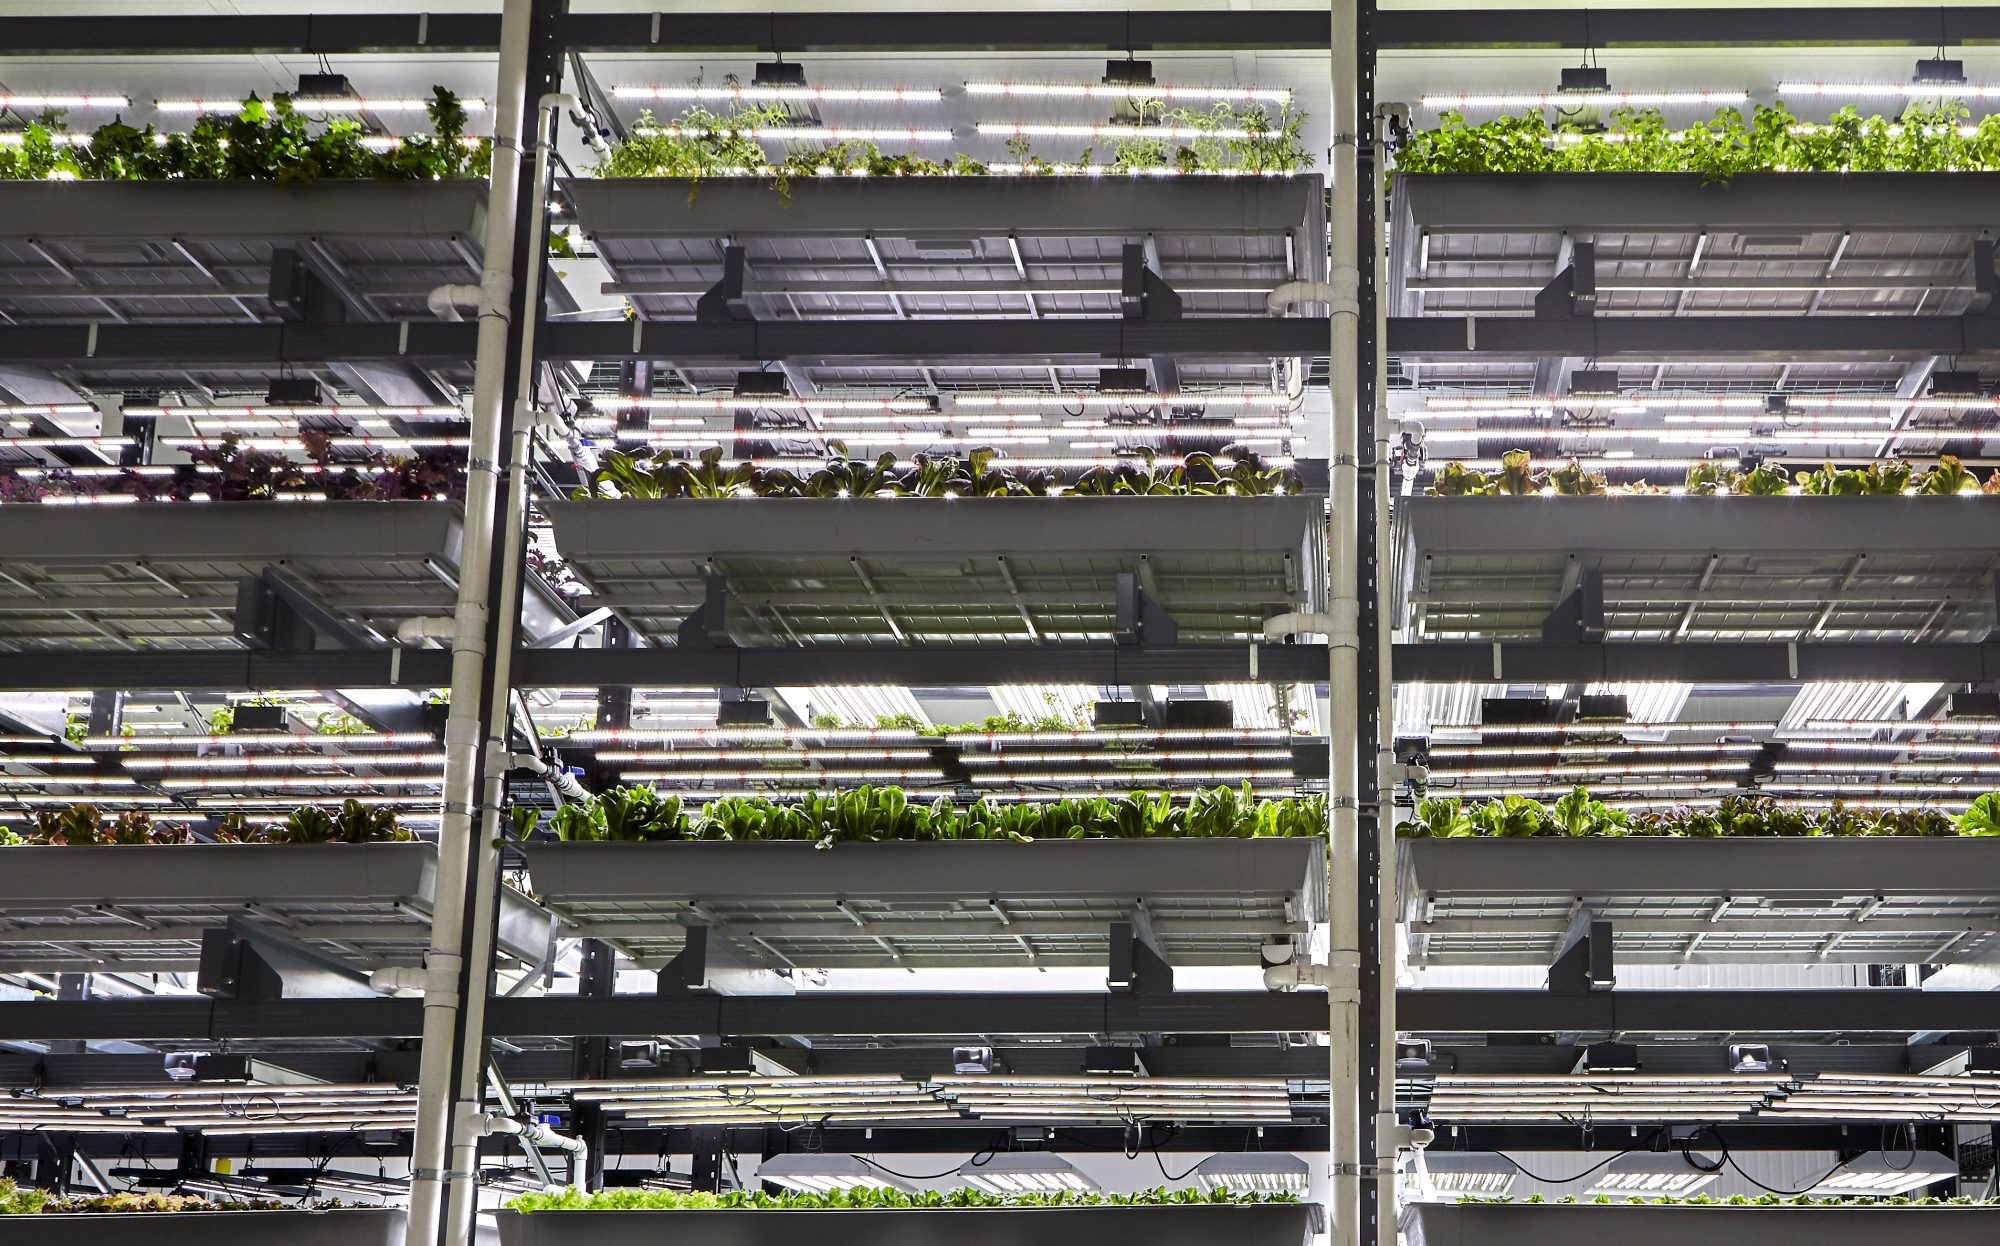 This Startup Is Building the Techiest Indoor Farm in the World